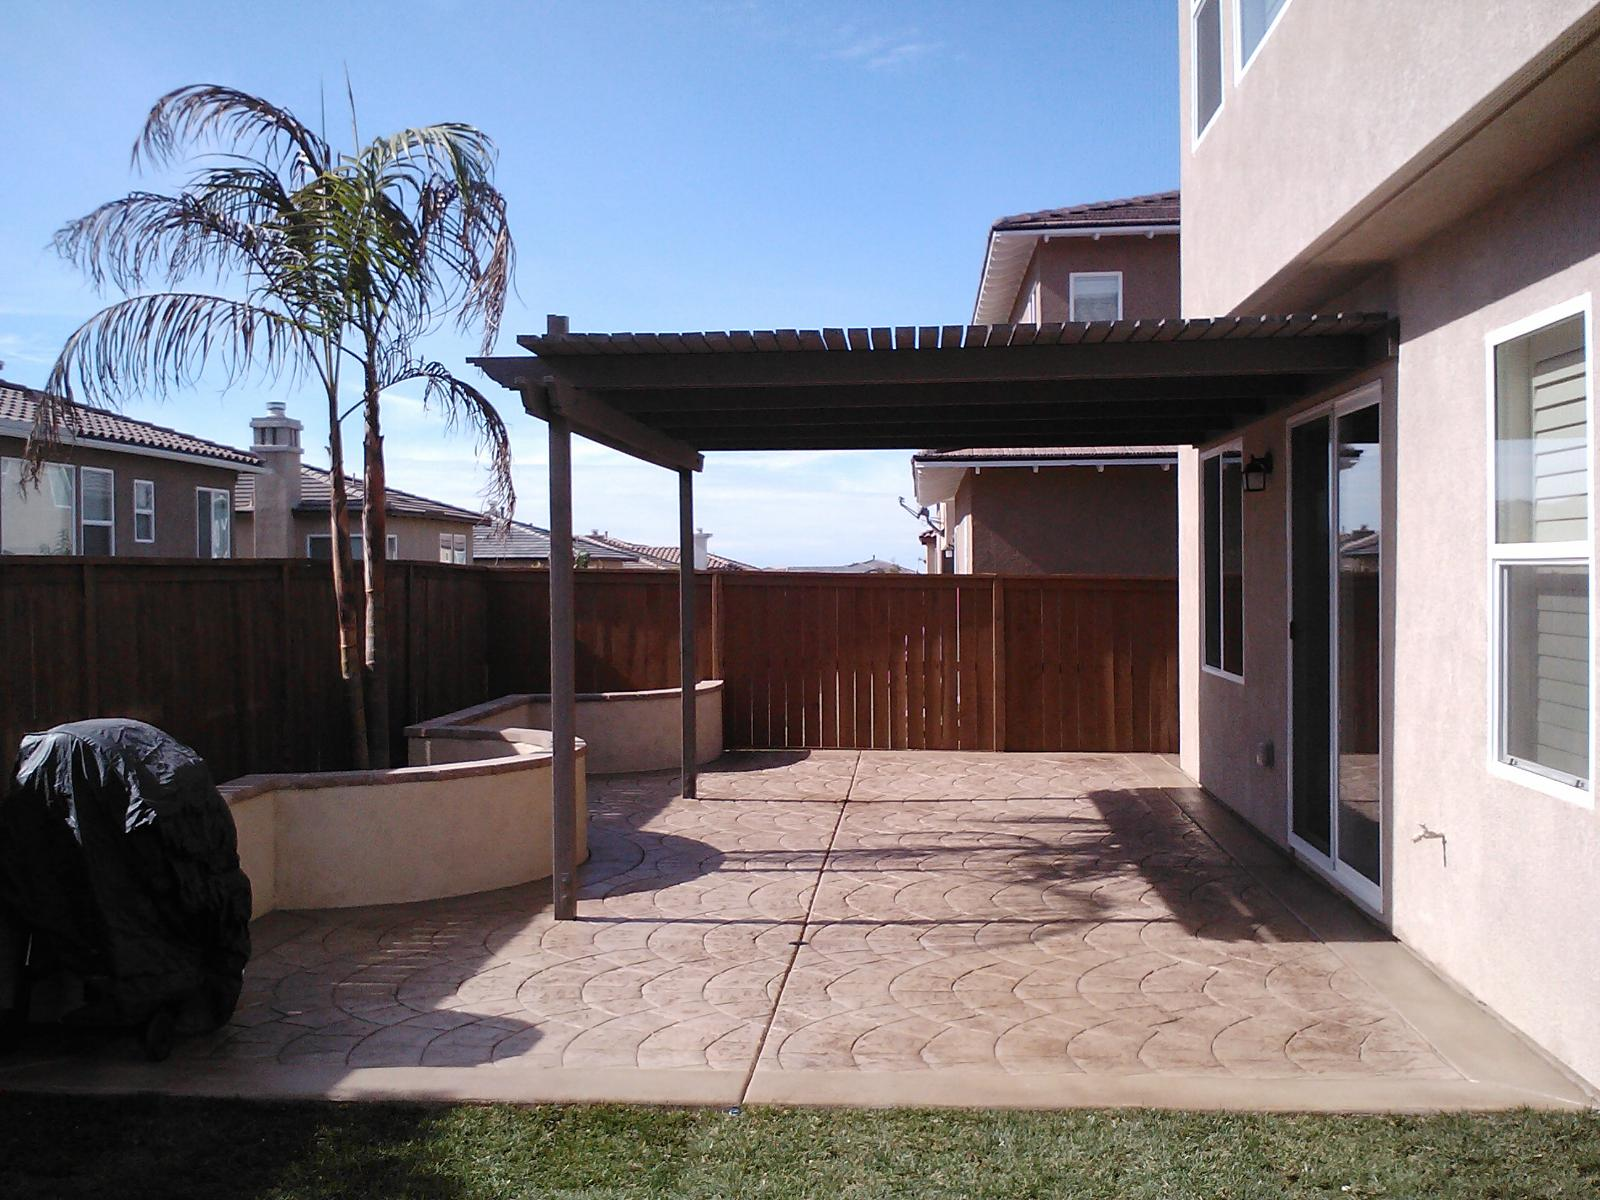 Stamped Patio Concrete Contractor Del Mar, Decorative Concrete Patio Contractors